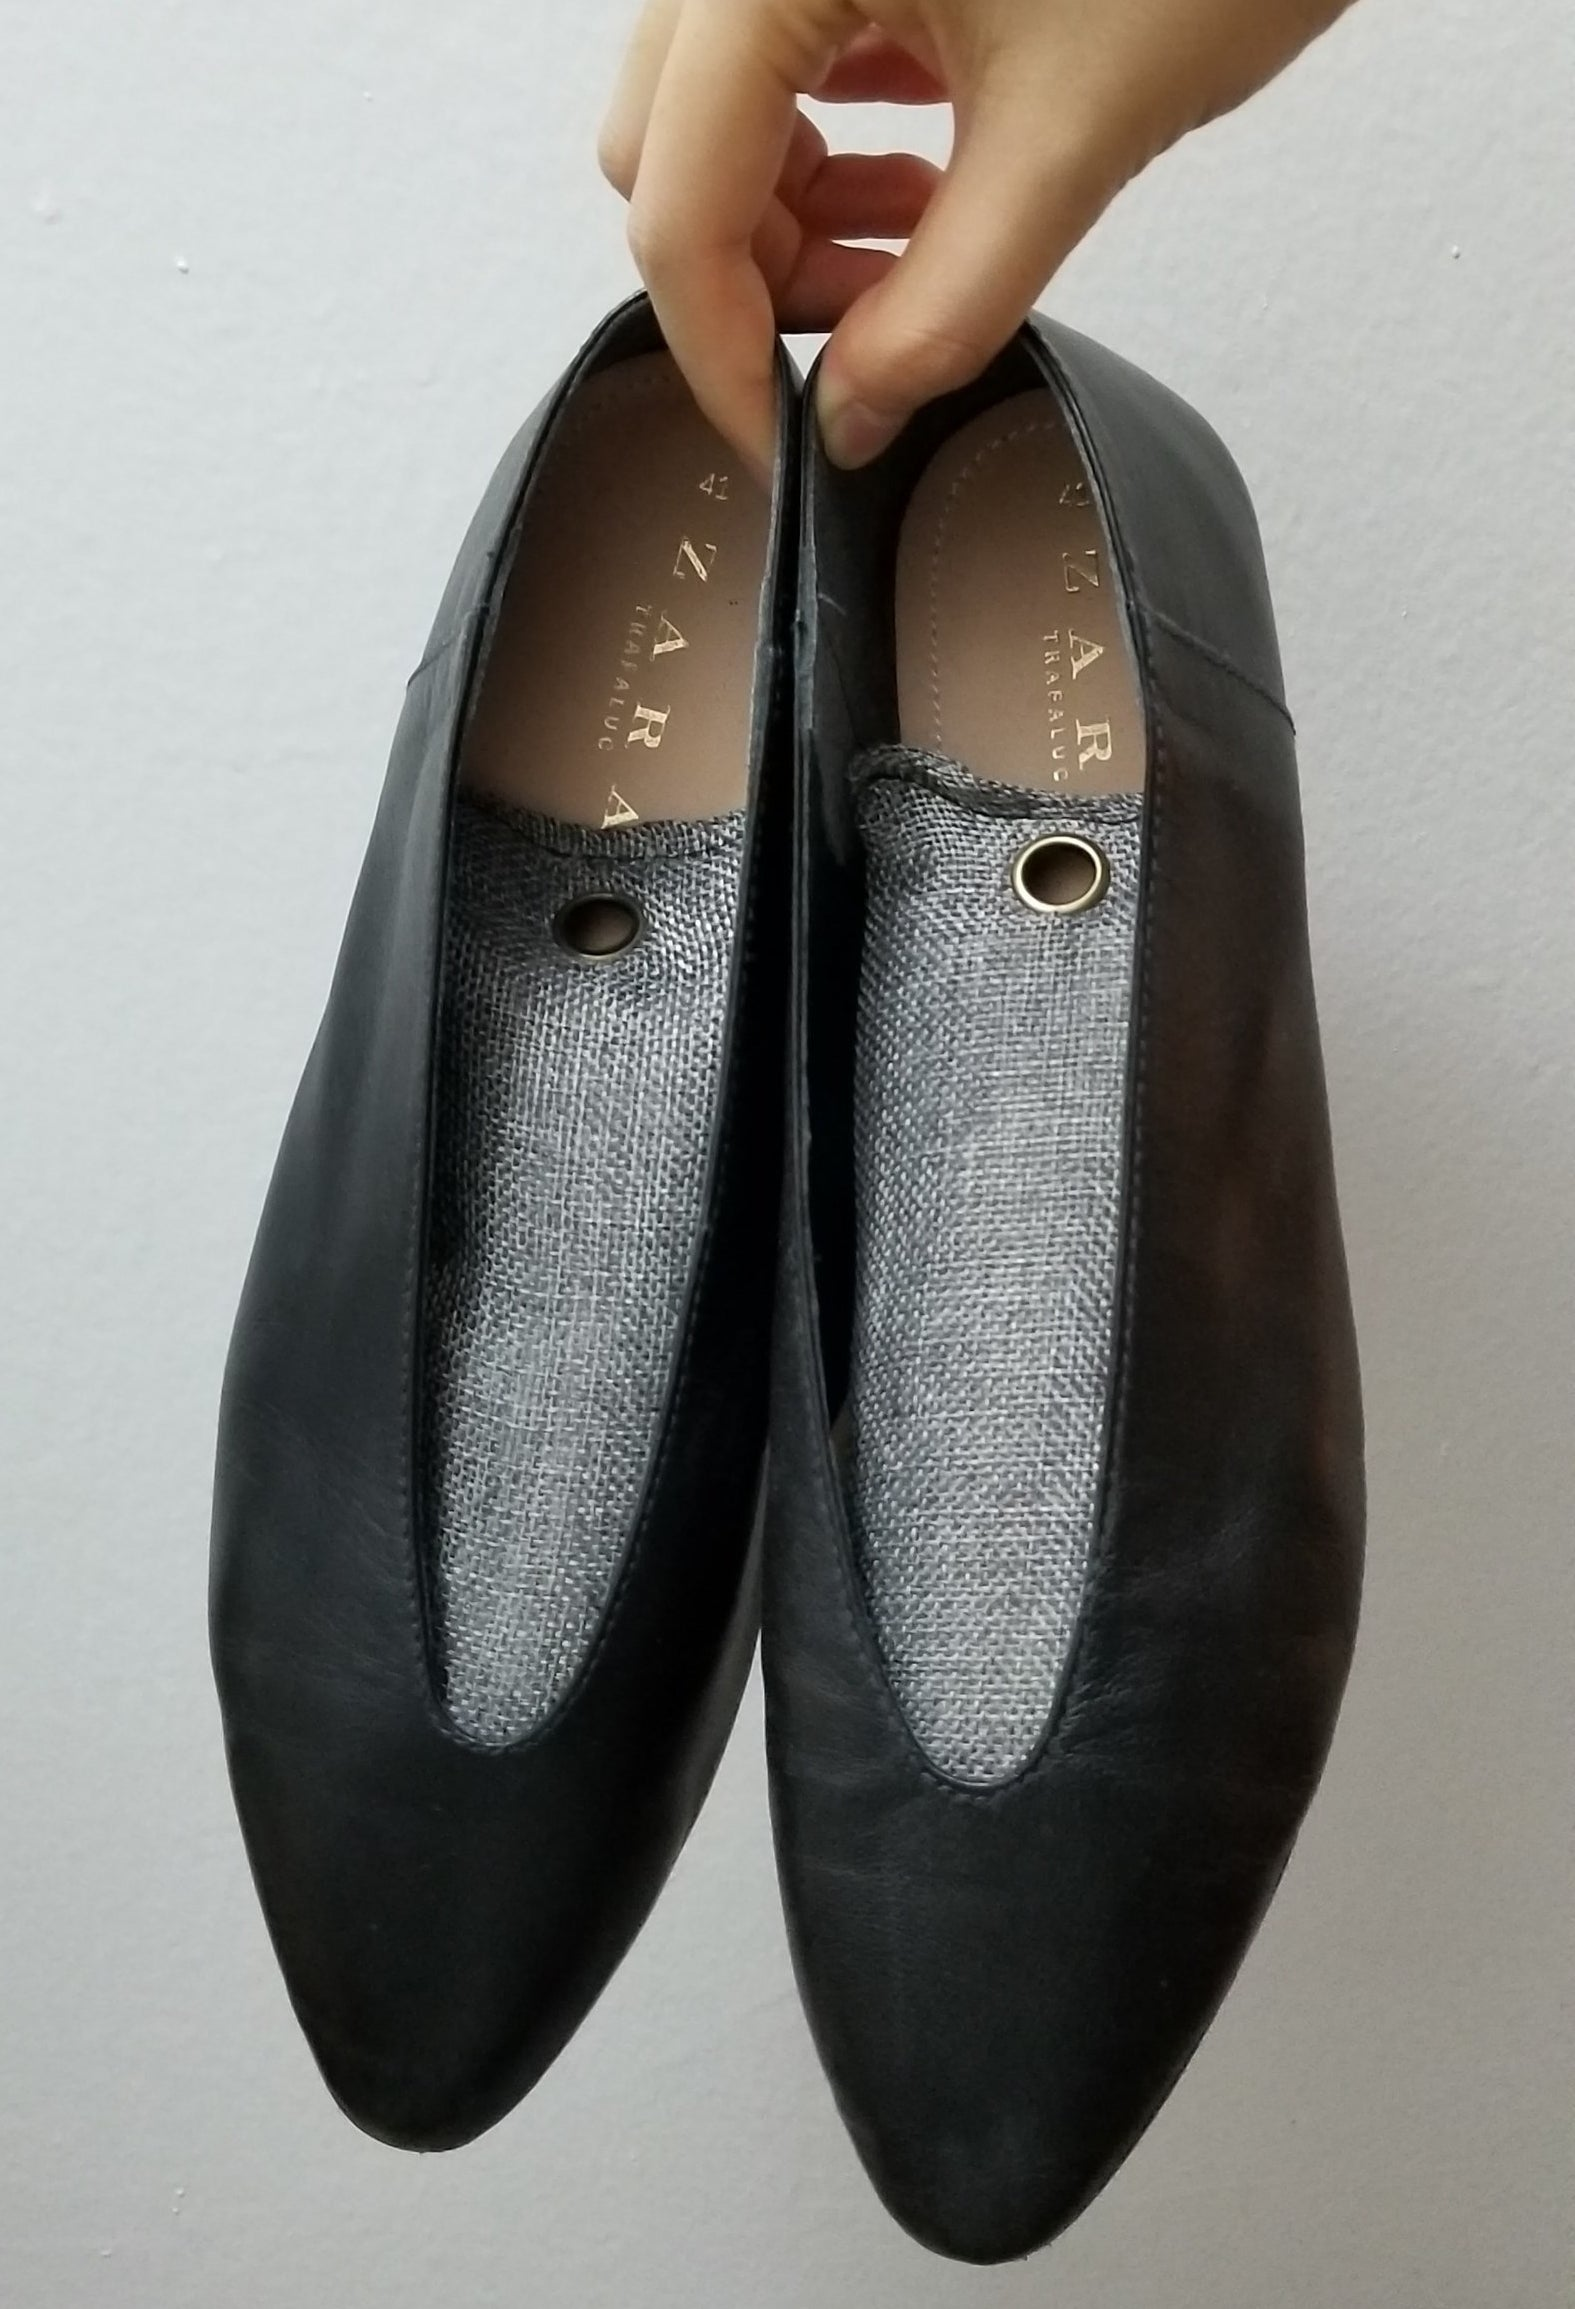 A person holding a pair of flat shoes with deodorizing bags inside them